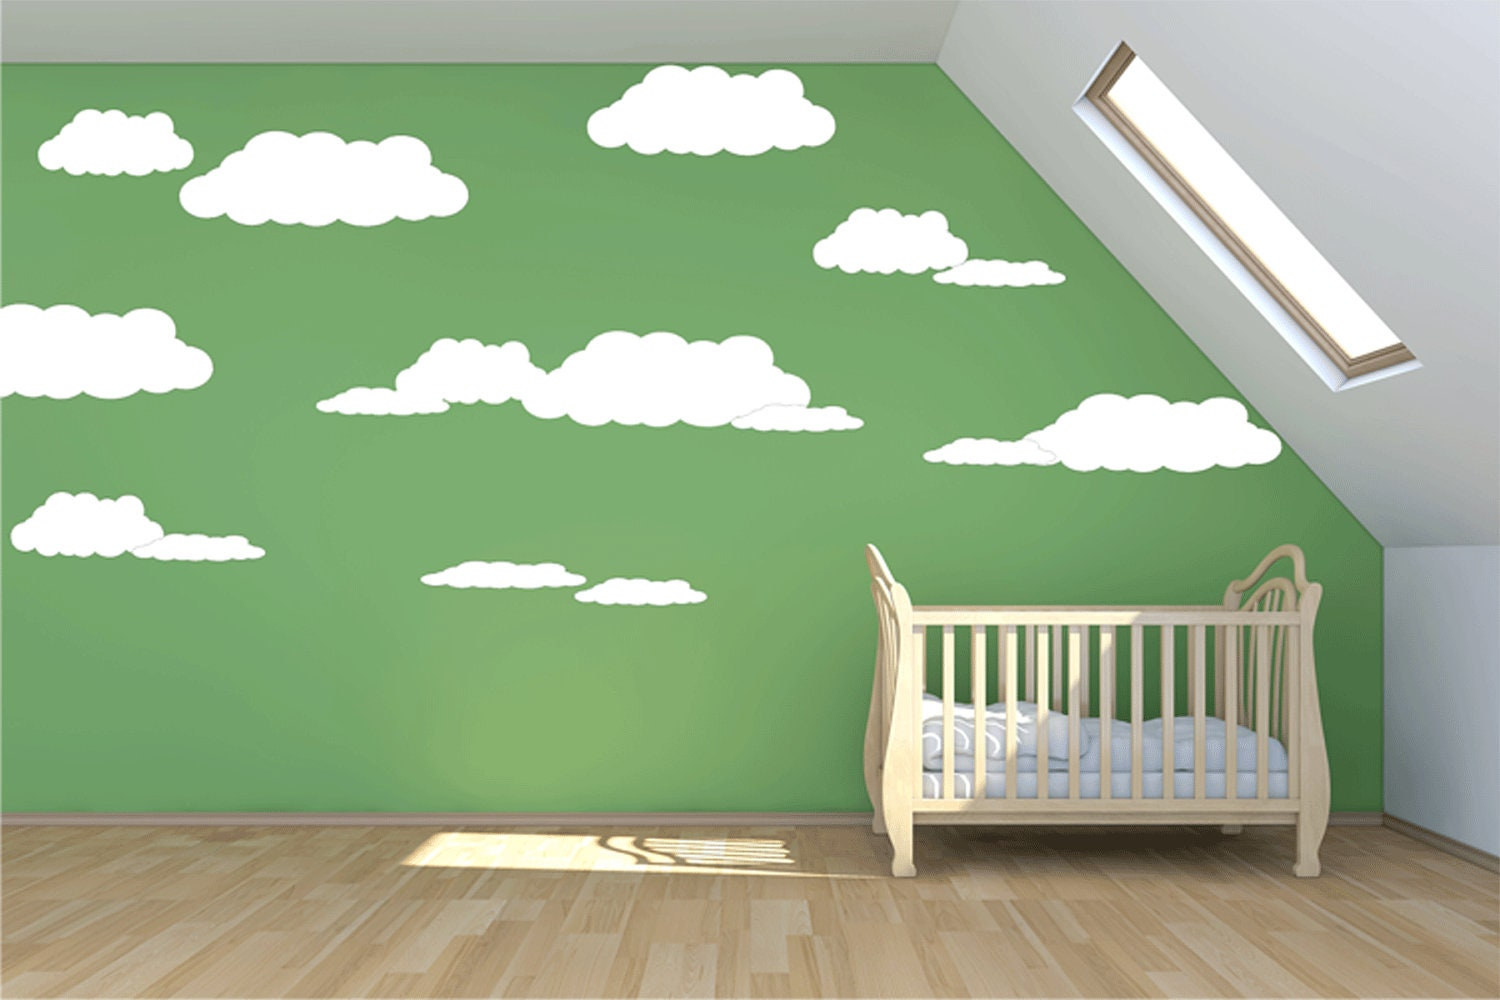 Large cloud wall decal 7 clouds mural wall stickers for Cloud wall mural